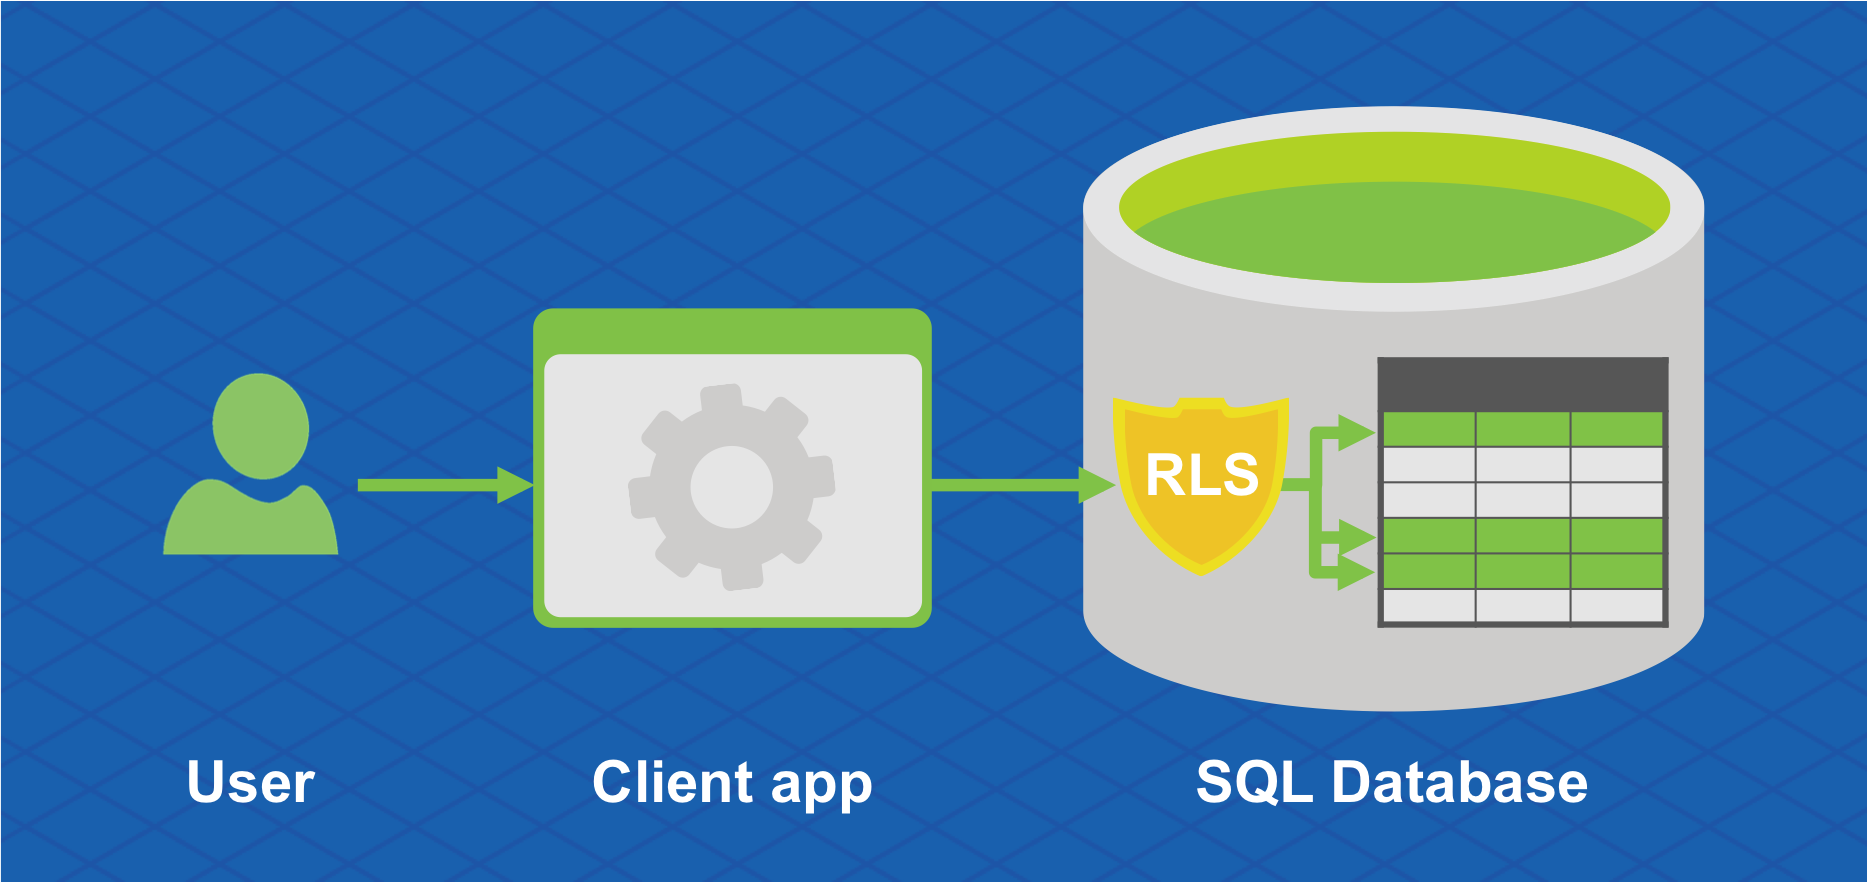 Limiting Access To Data Using Row Level Security Sql Server Blog Policy And Procedures As Your Application Grows Rls Helps You Maintain A Consistent Reduce The Risk Of Accidental Leakage